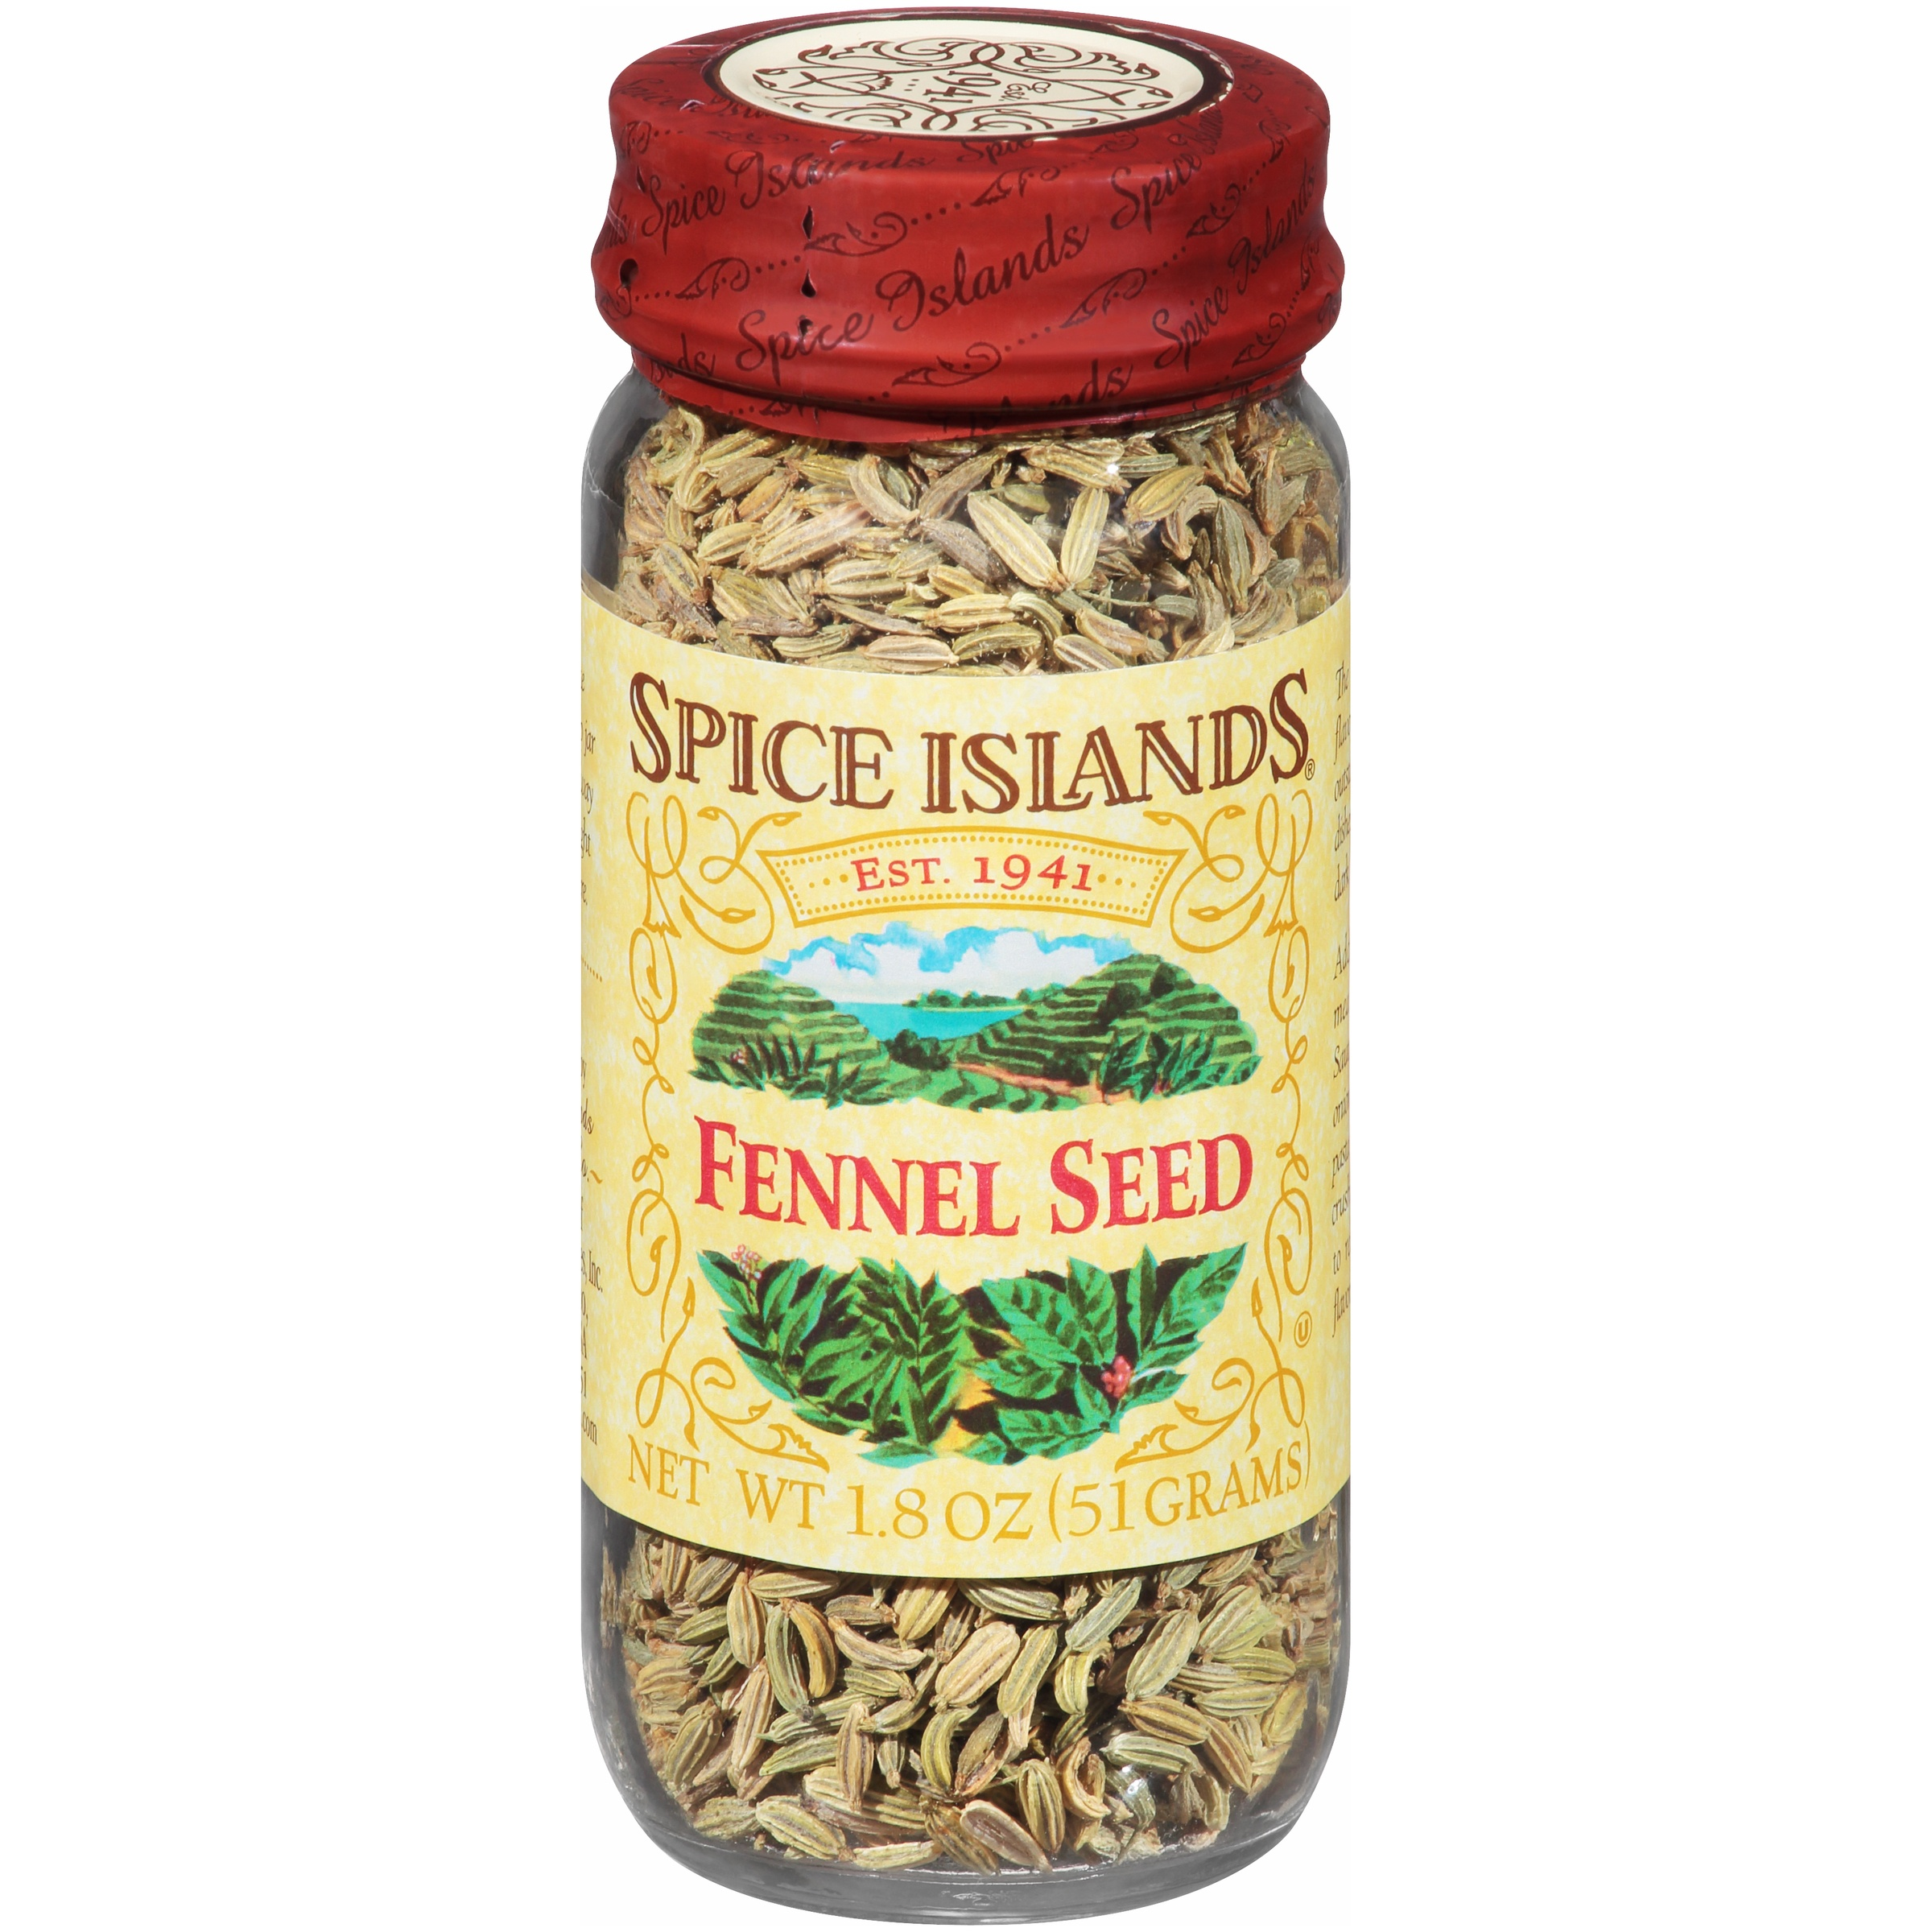 (2 Pack) Spice Islands® Fennel Seed 1.8 oz. Jar